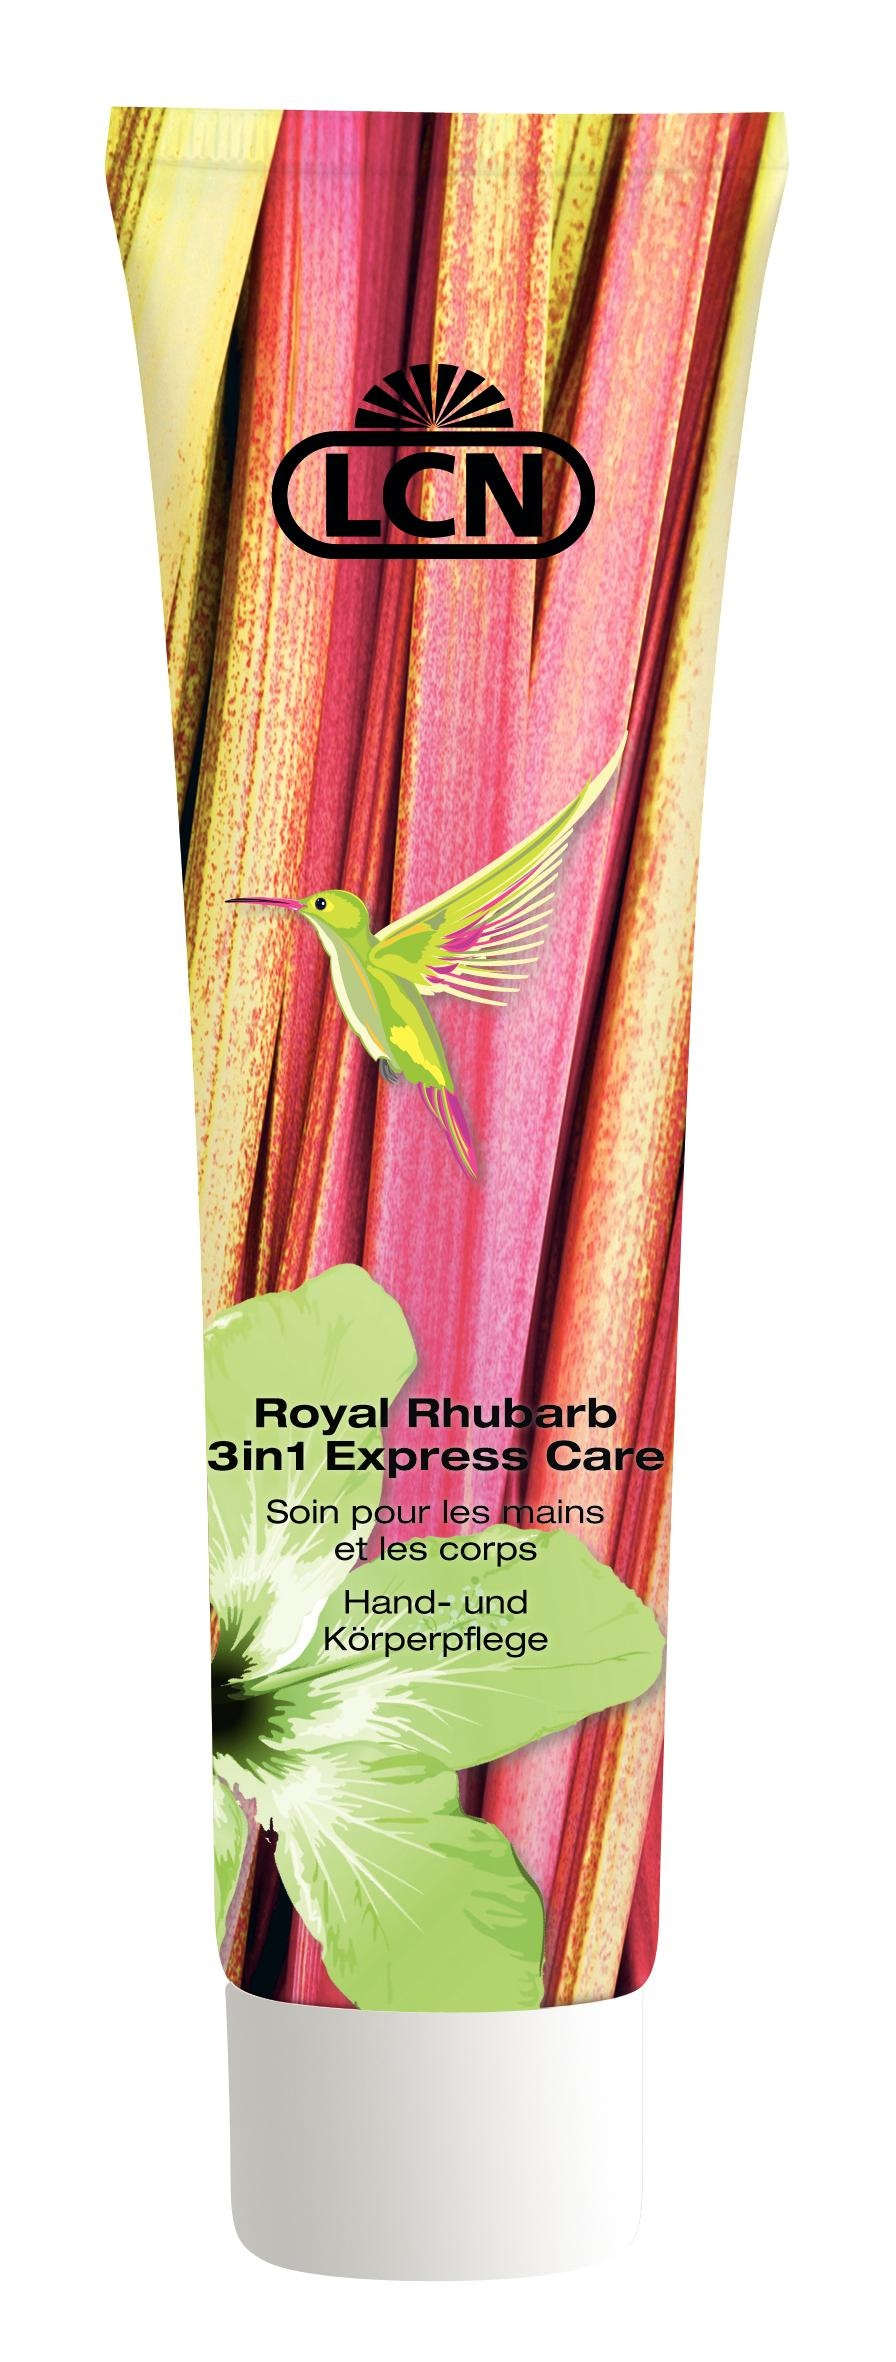 3In1 Express Care-Royal Rhubarb, 100ml